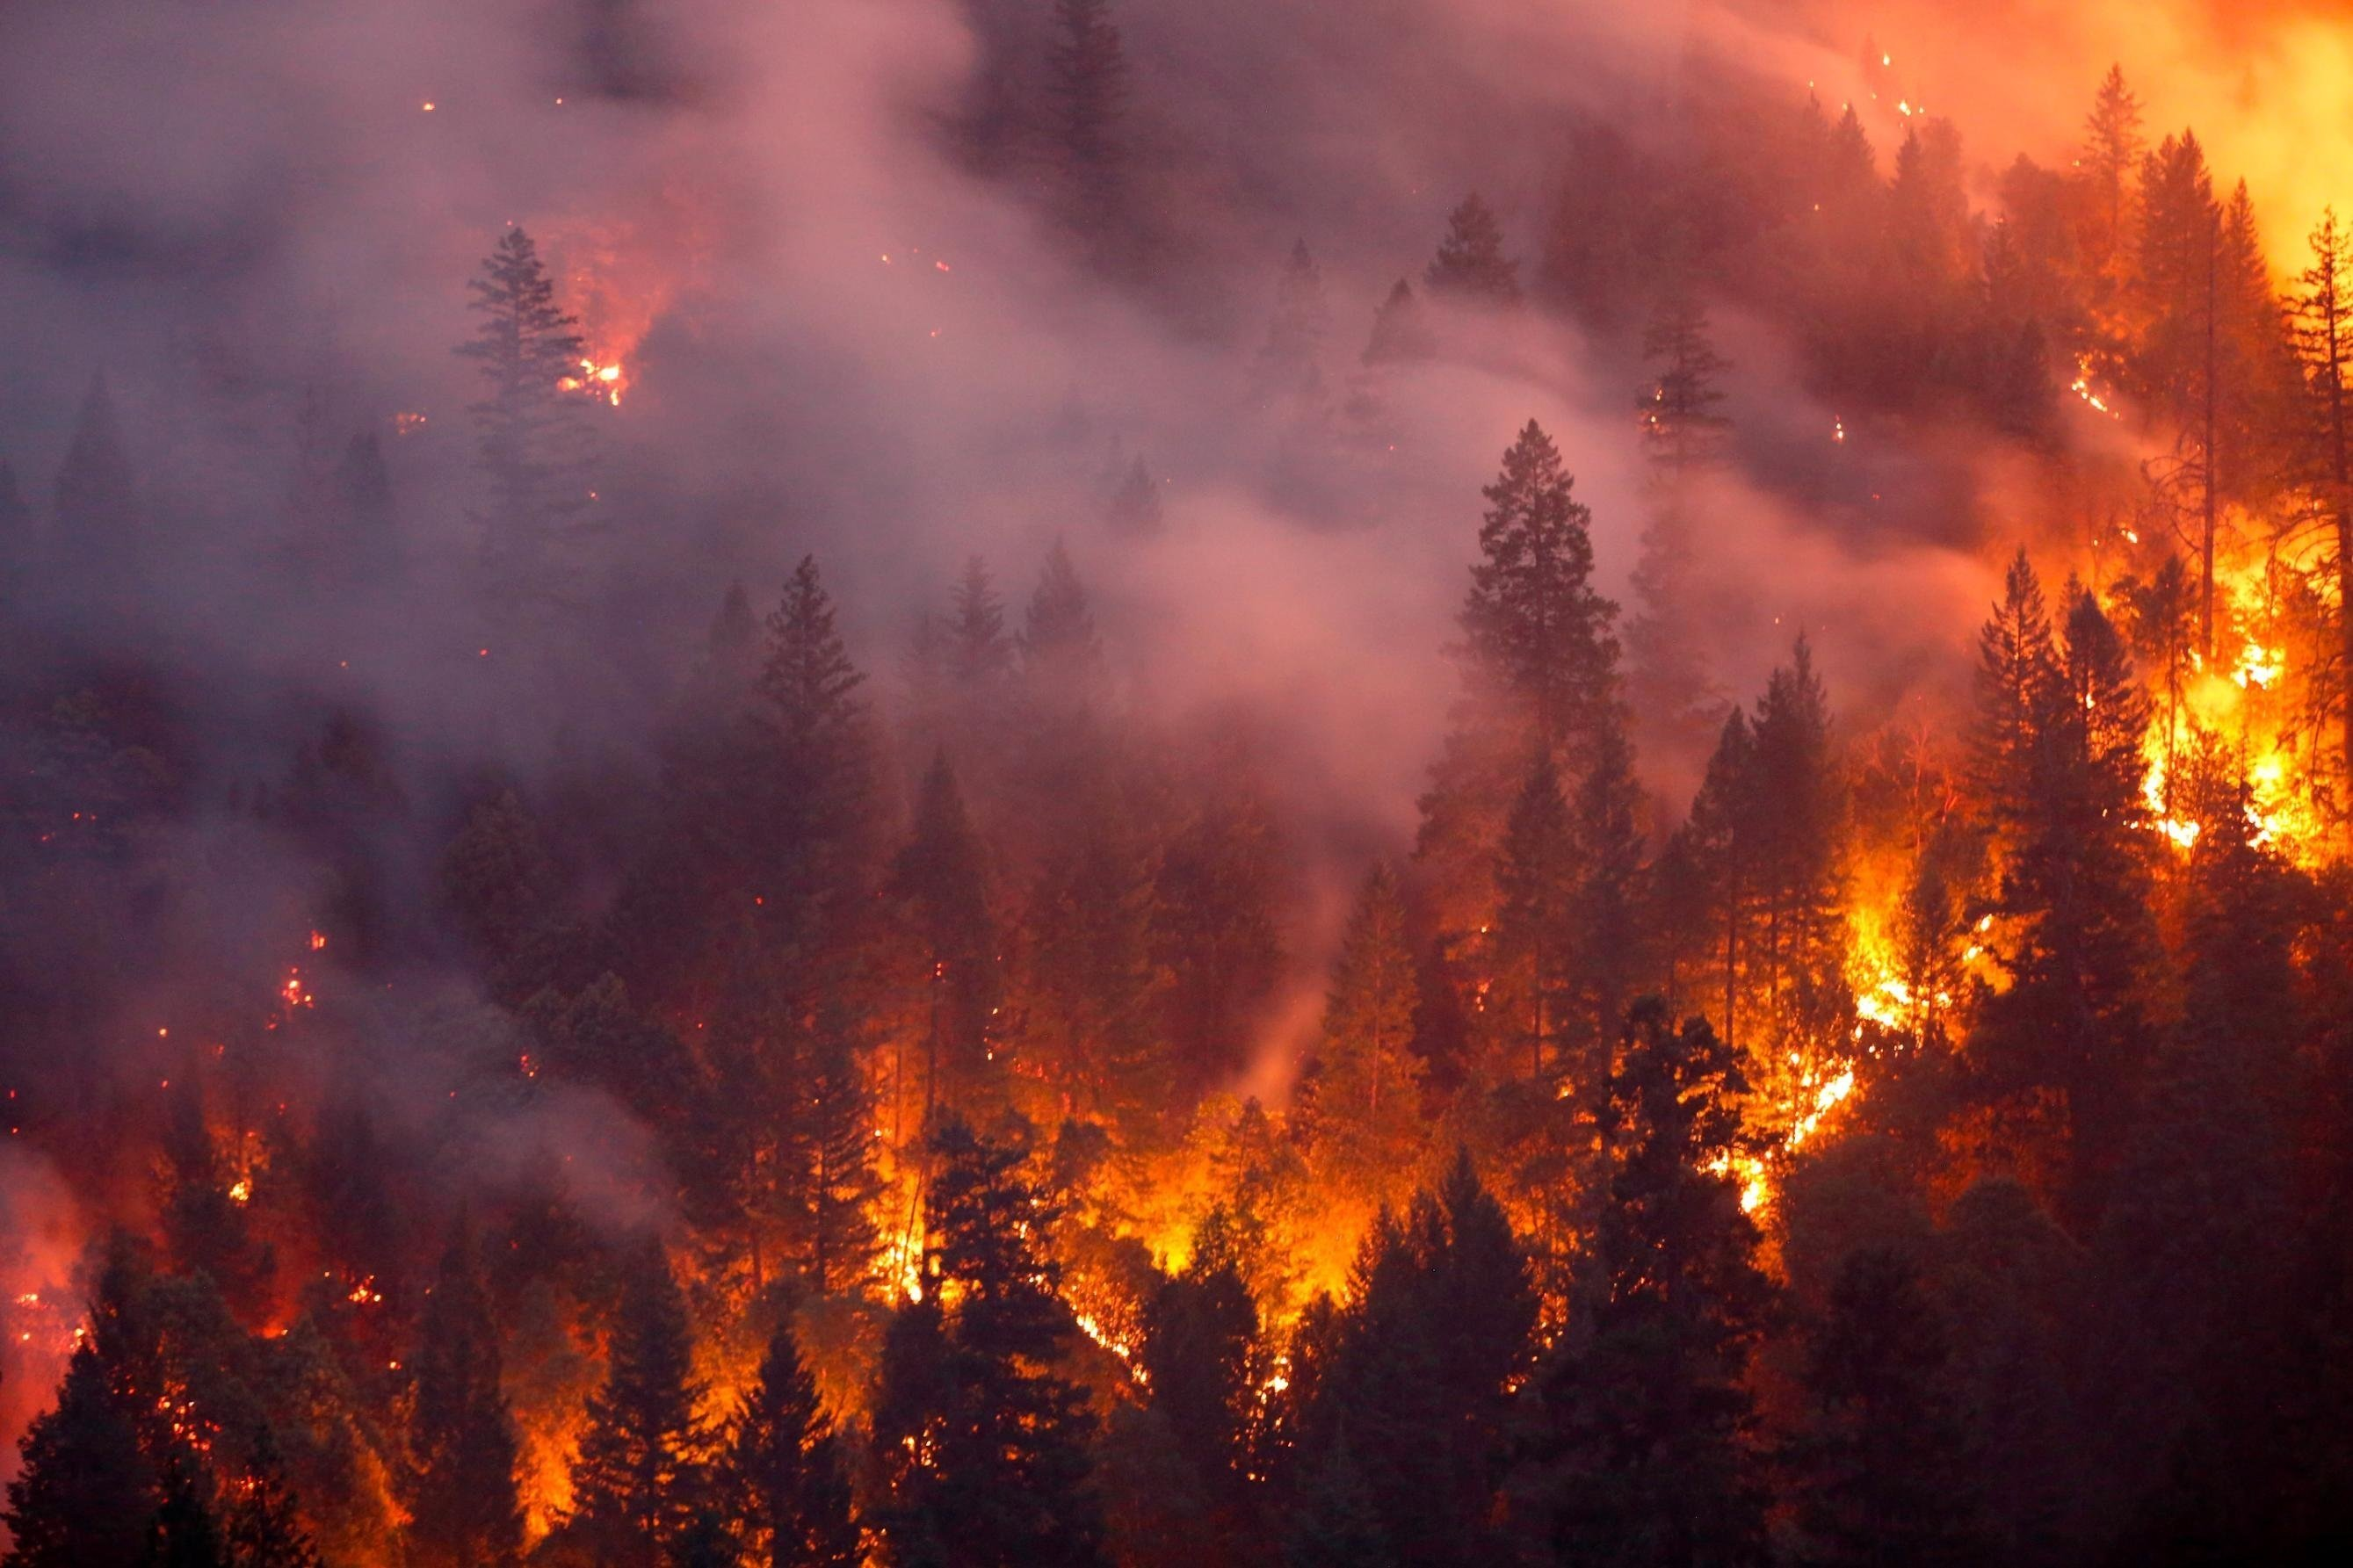 The winds raged, as fast as 165 mph, uprooting trees and ripping off roofs. Windows on firefighting bulldozers shattered as gusts inside the vortex hurled debris, rocks and embers. Temperatures inside likely exceeded 2,700 degrees Fahrenheit.  Getty/CNN